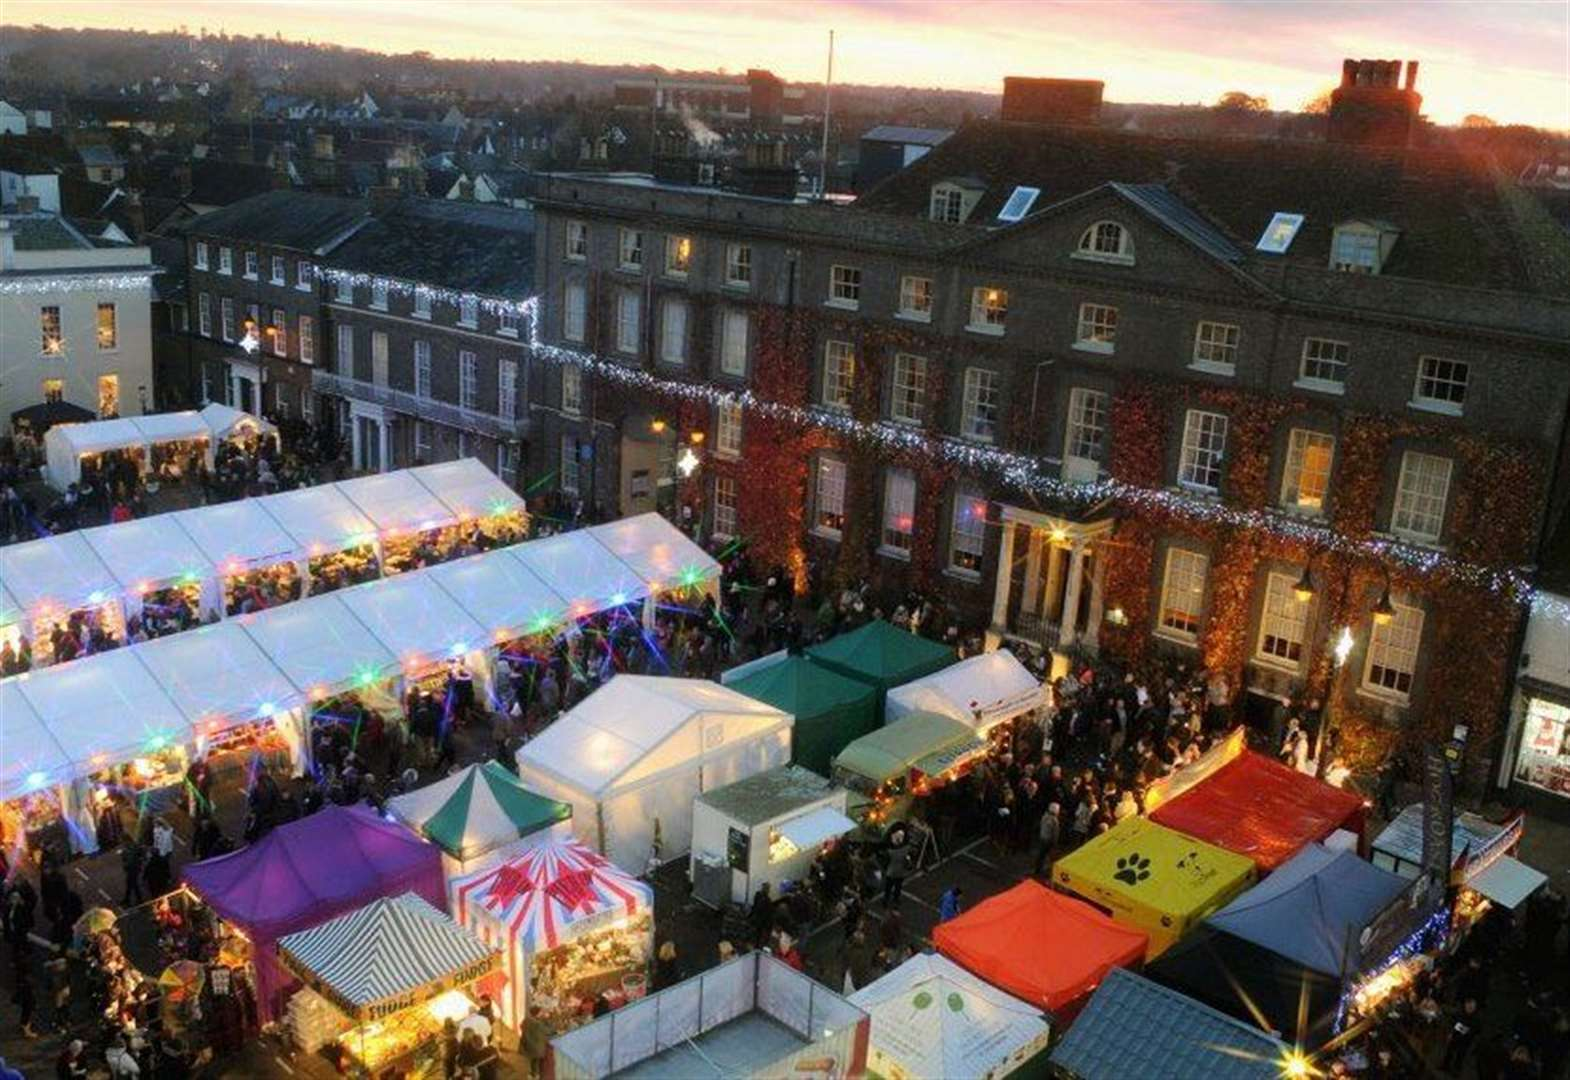 All you need to know about the Christmas Fayre in Bury St Edmunds